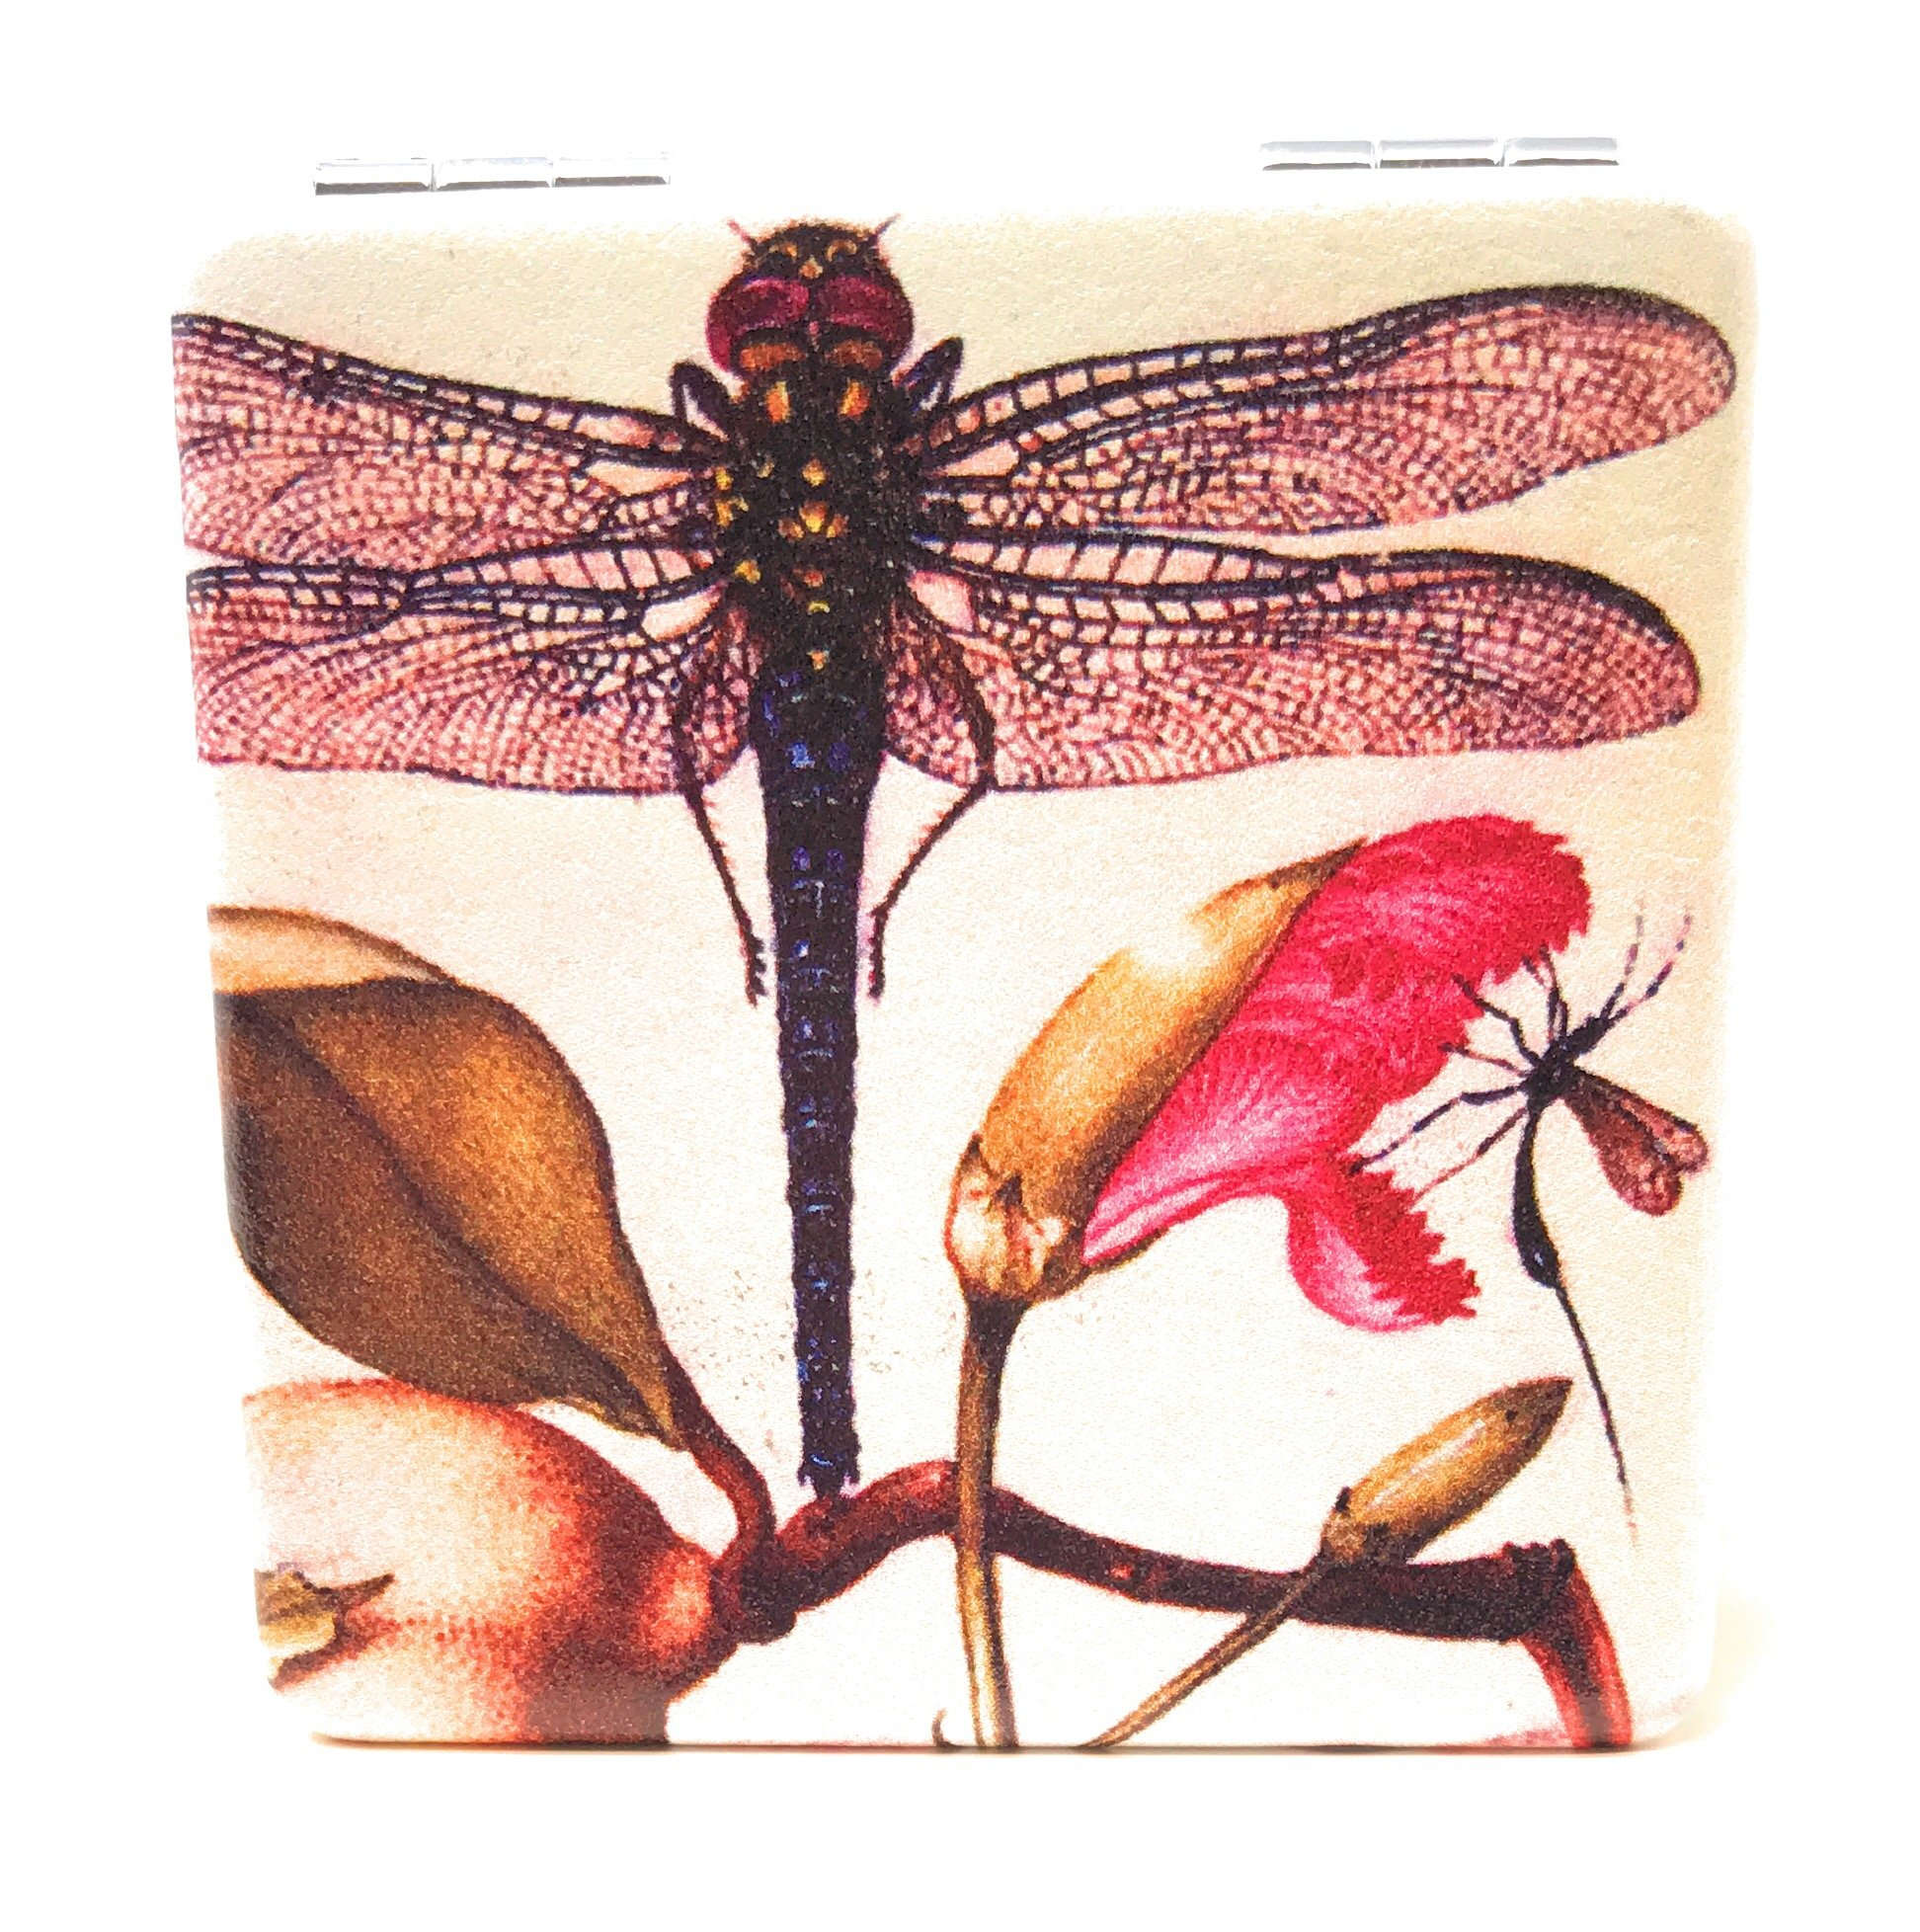 Value Arts French Vintage Dragonfly Print Purse Compact Travel Makeup Mirror and Magnification, 2.375 Inches Square by Value Arts (Image #1)